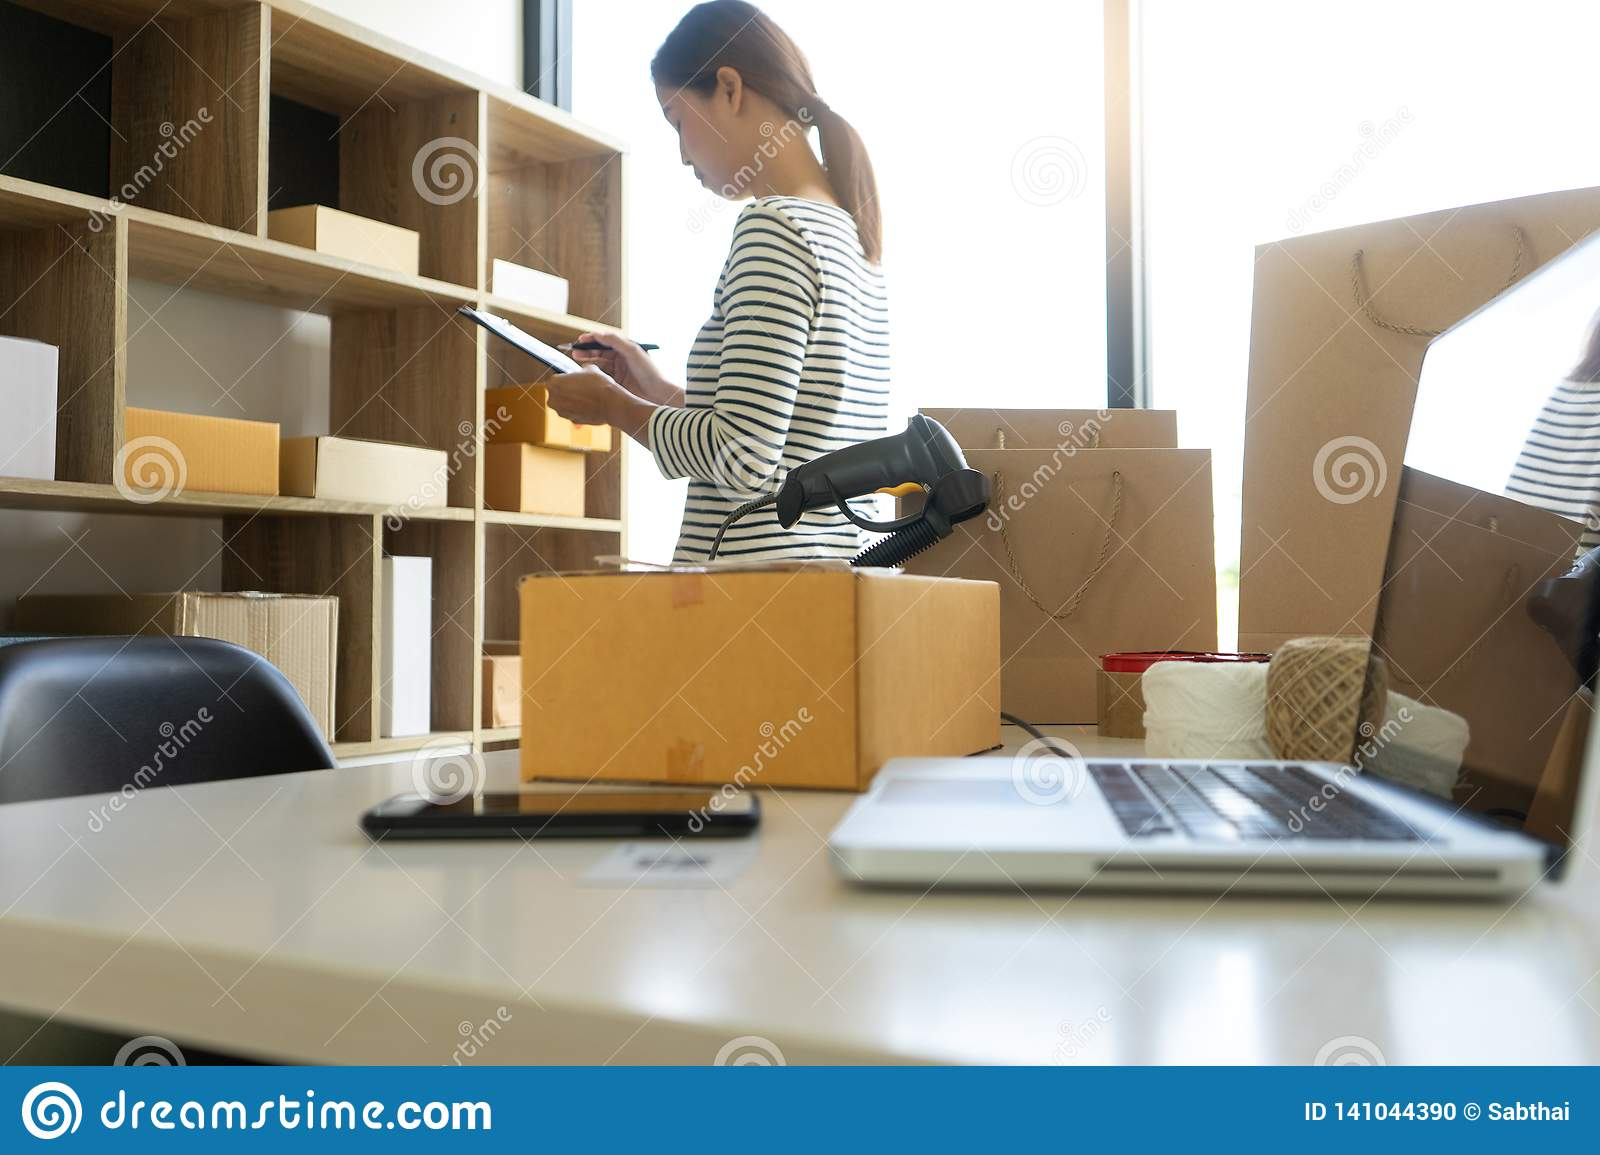 young woman work in back office